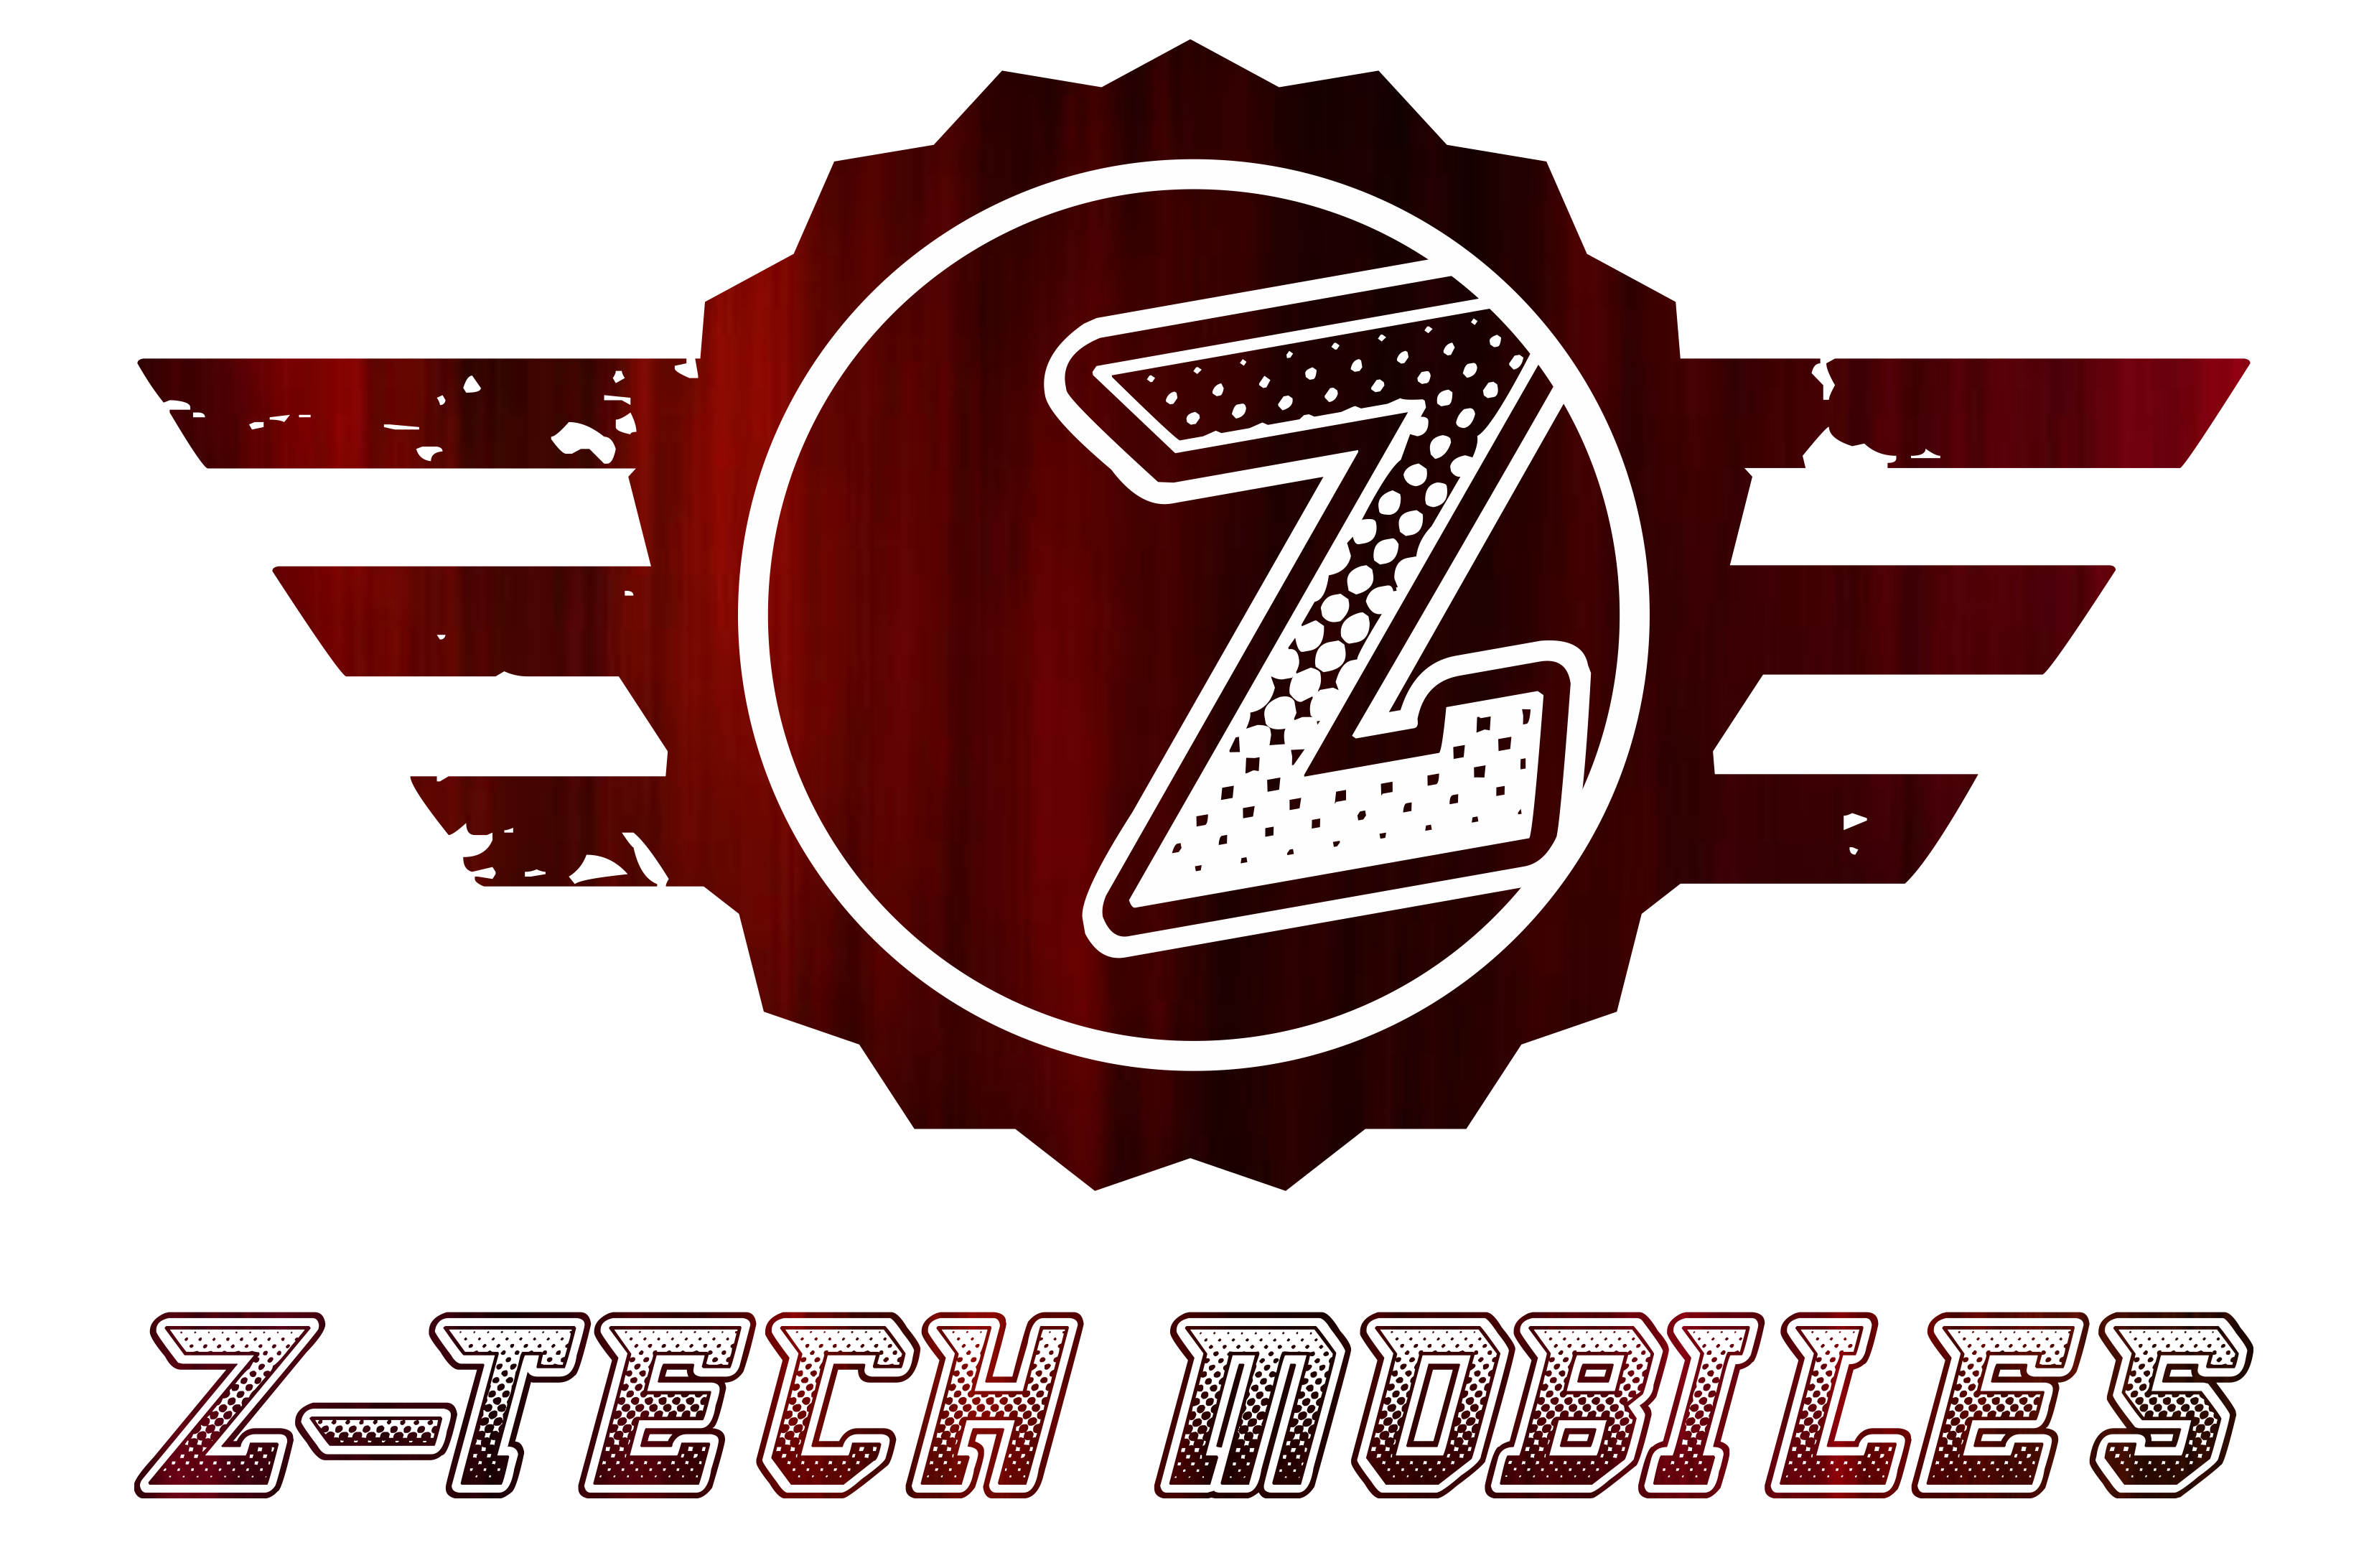 Z-tech Mobiles and PC